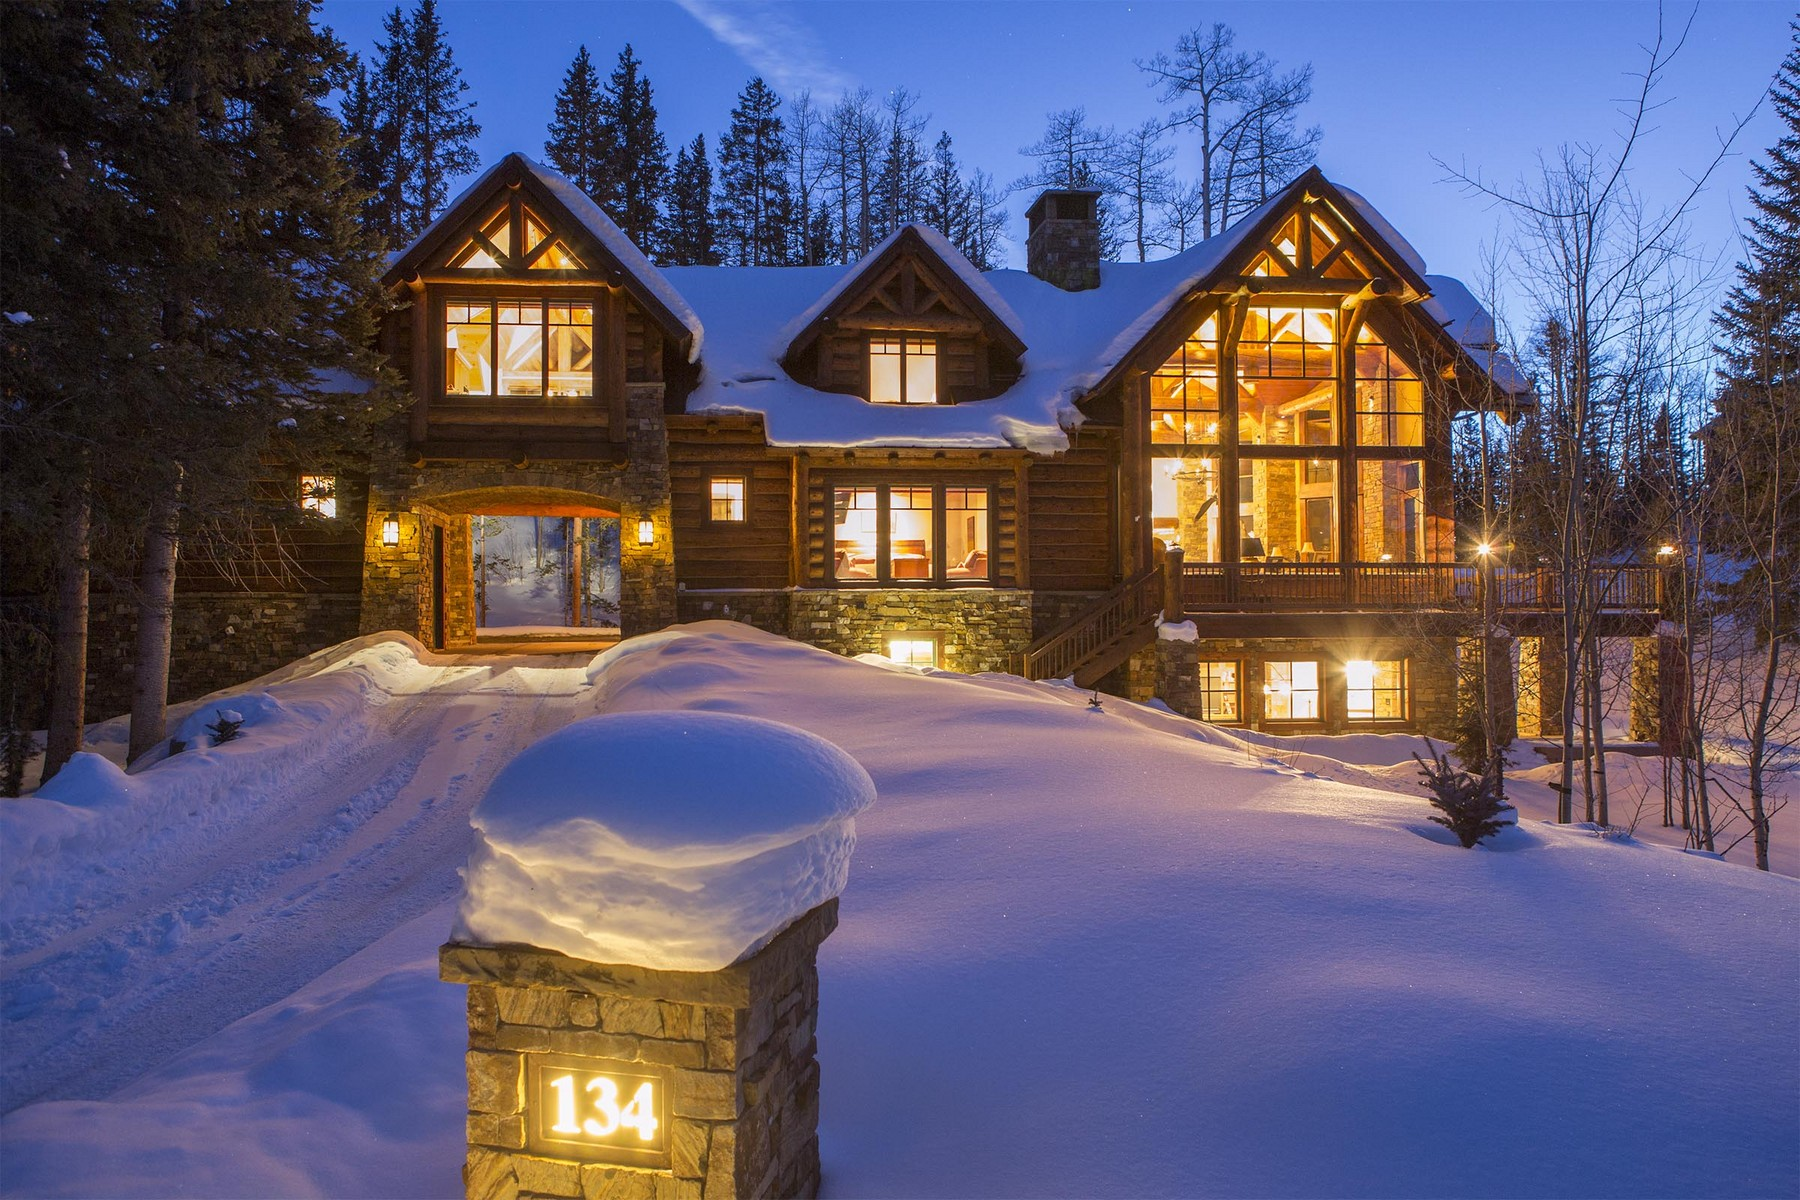 Villa per Vendita alle ore 134 High Country Road Telluride, Colorado 81435 Stati Uniti